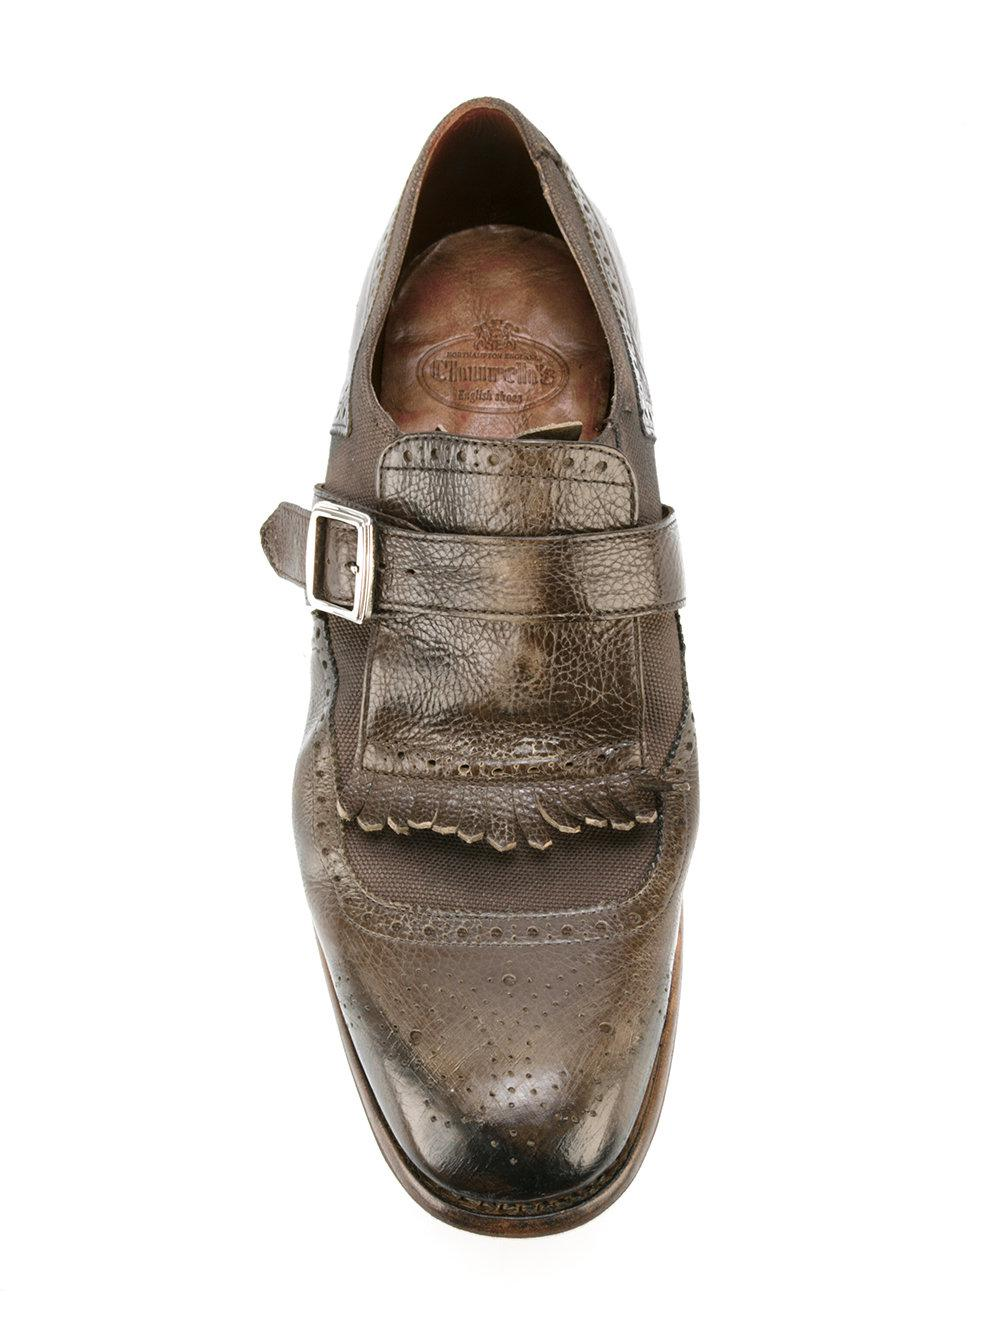 Church's Leather Fringed Trim Monk Shoes in Grey (Grey) for Men